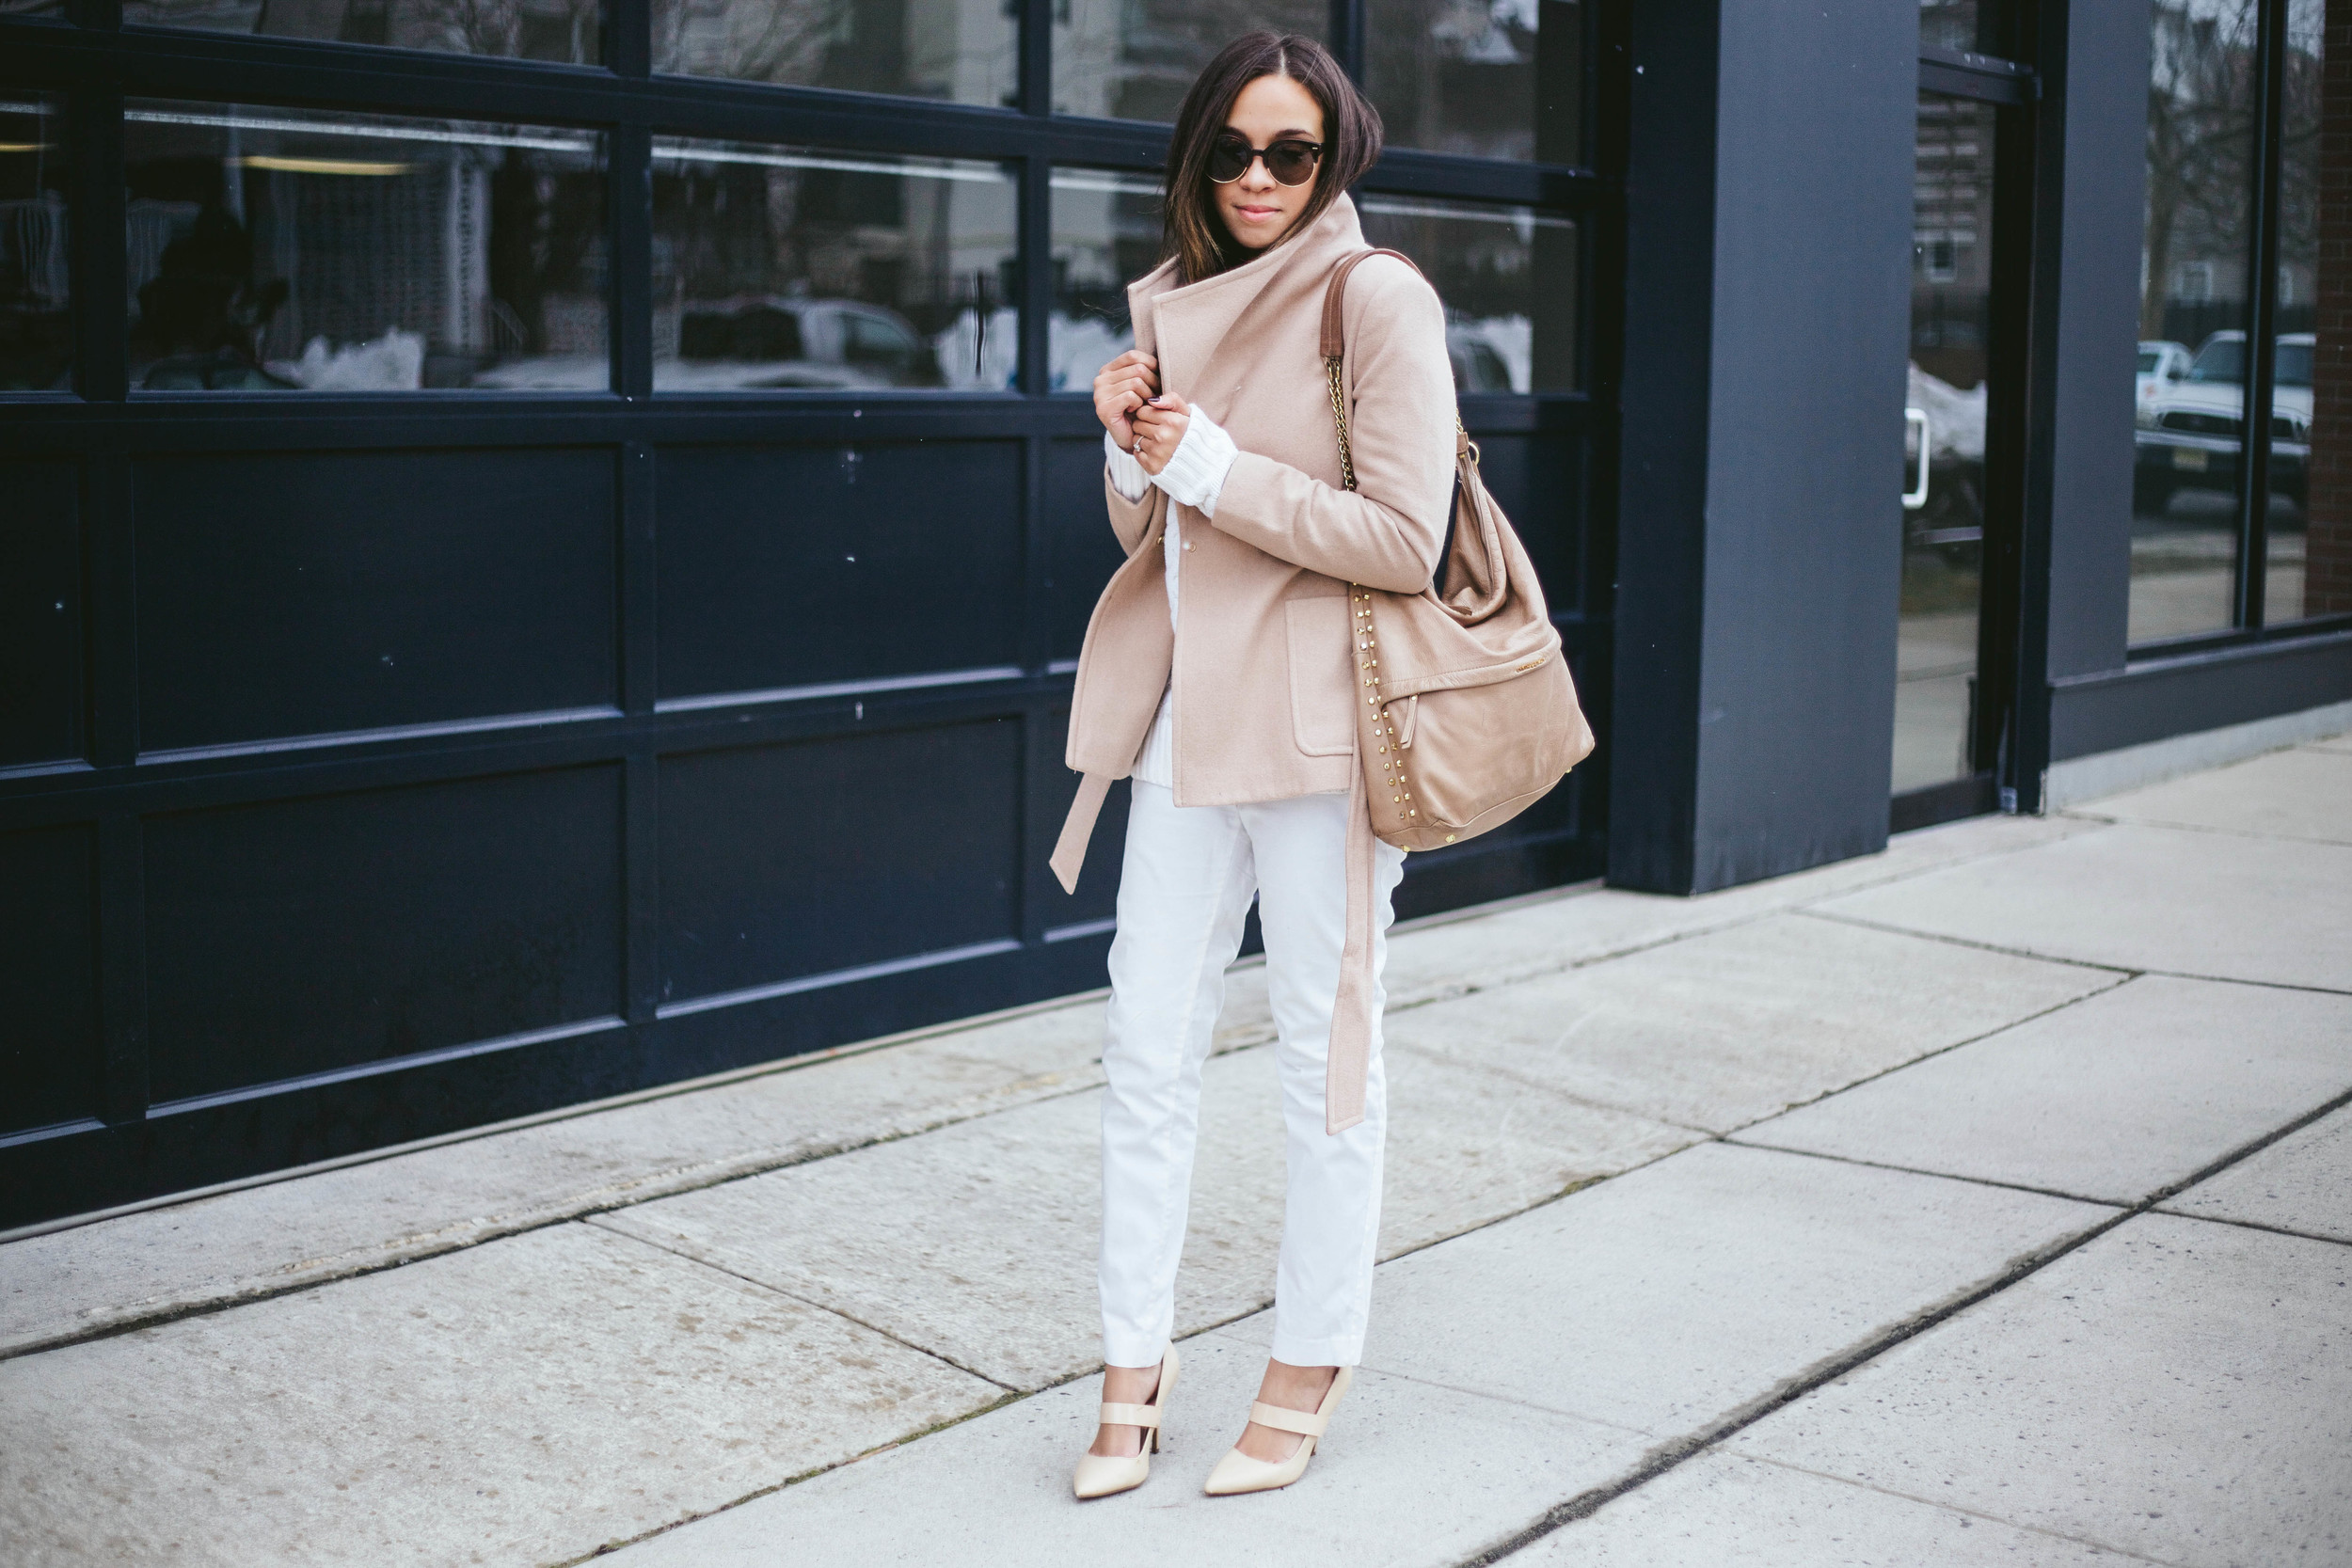 Winter White Outfit 10.jpg